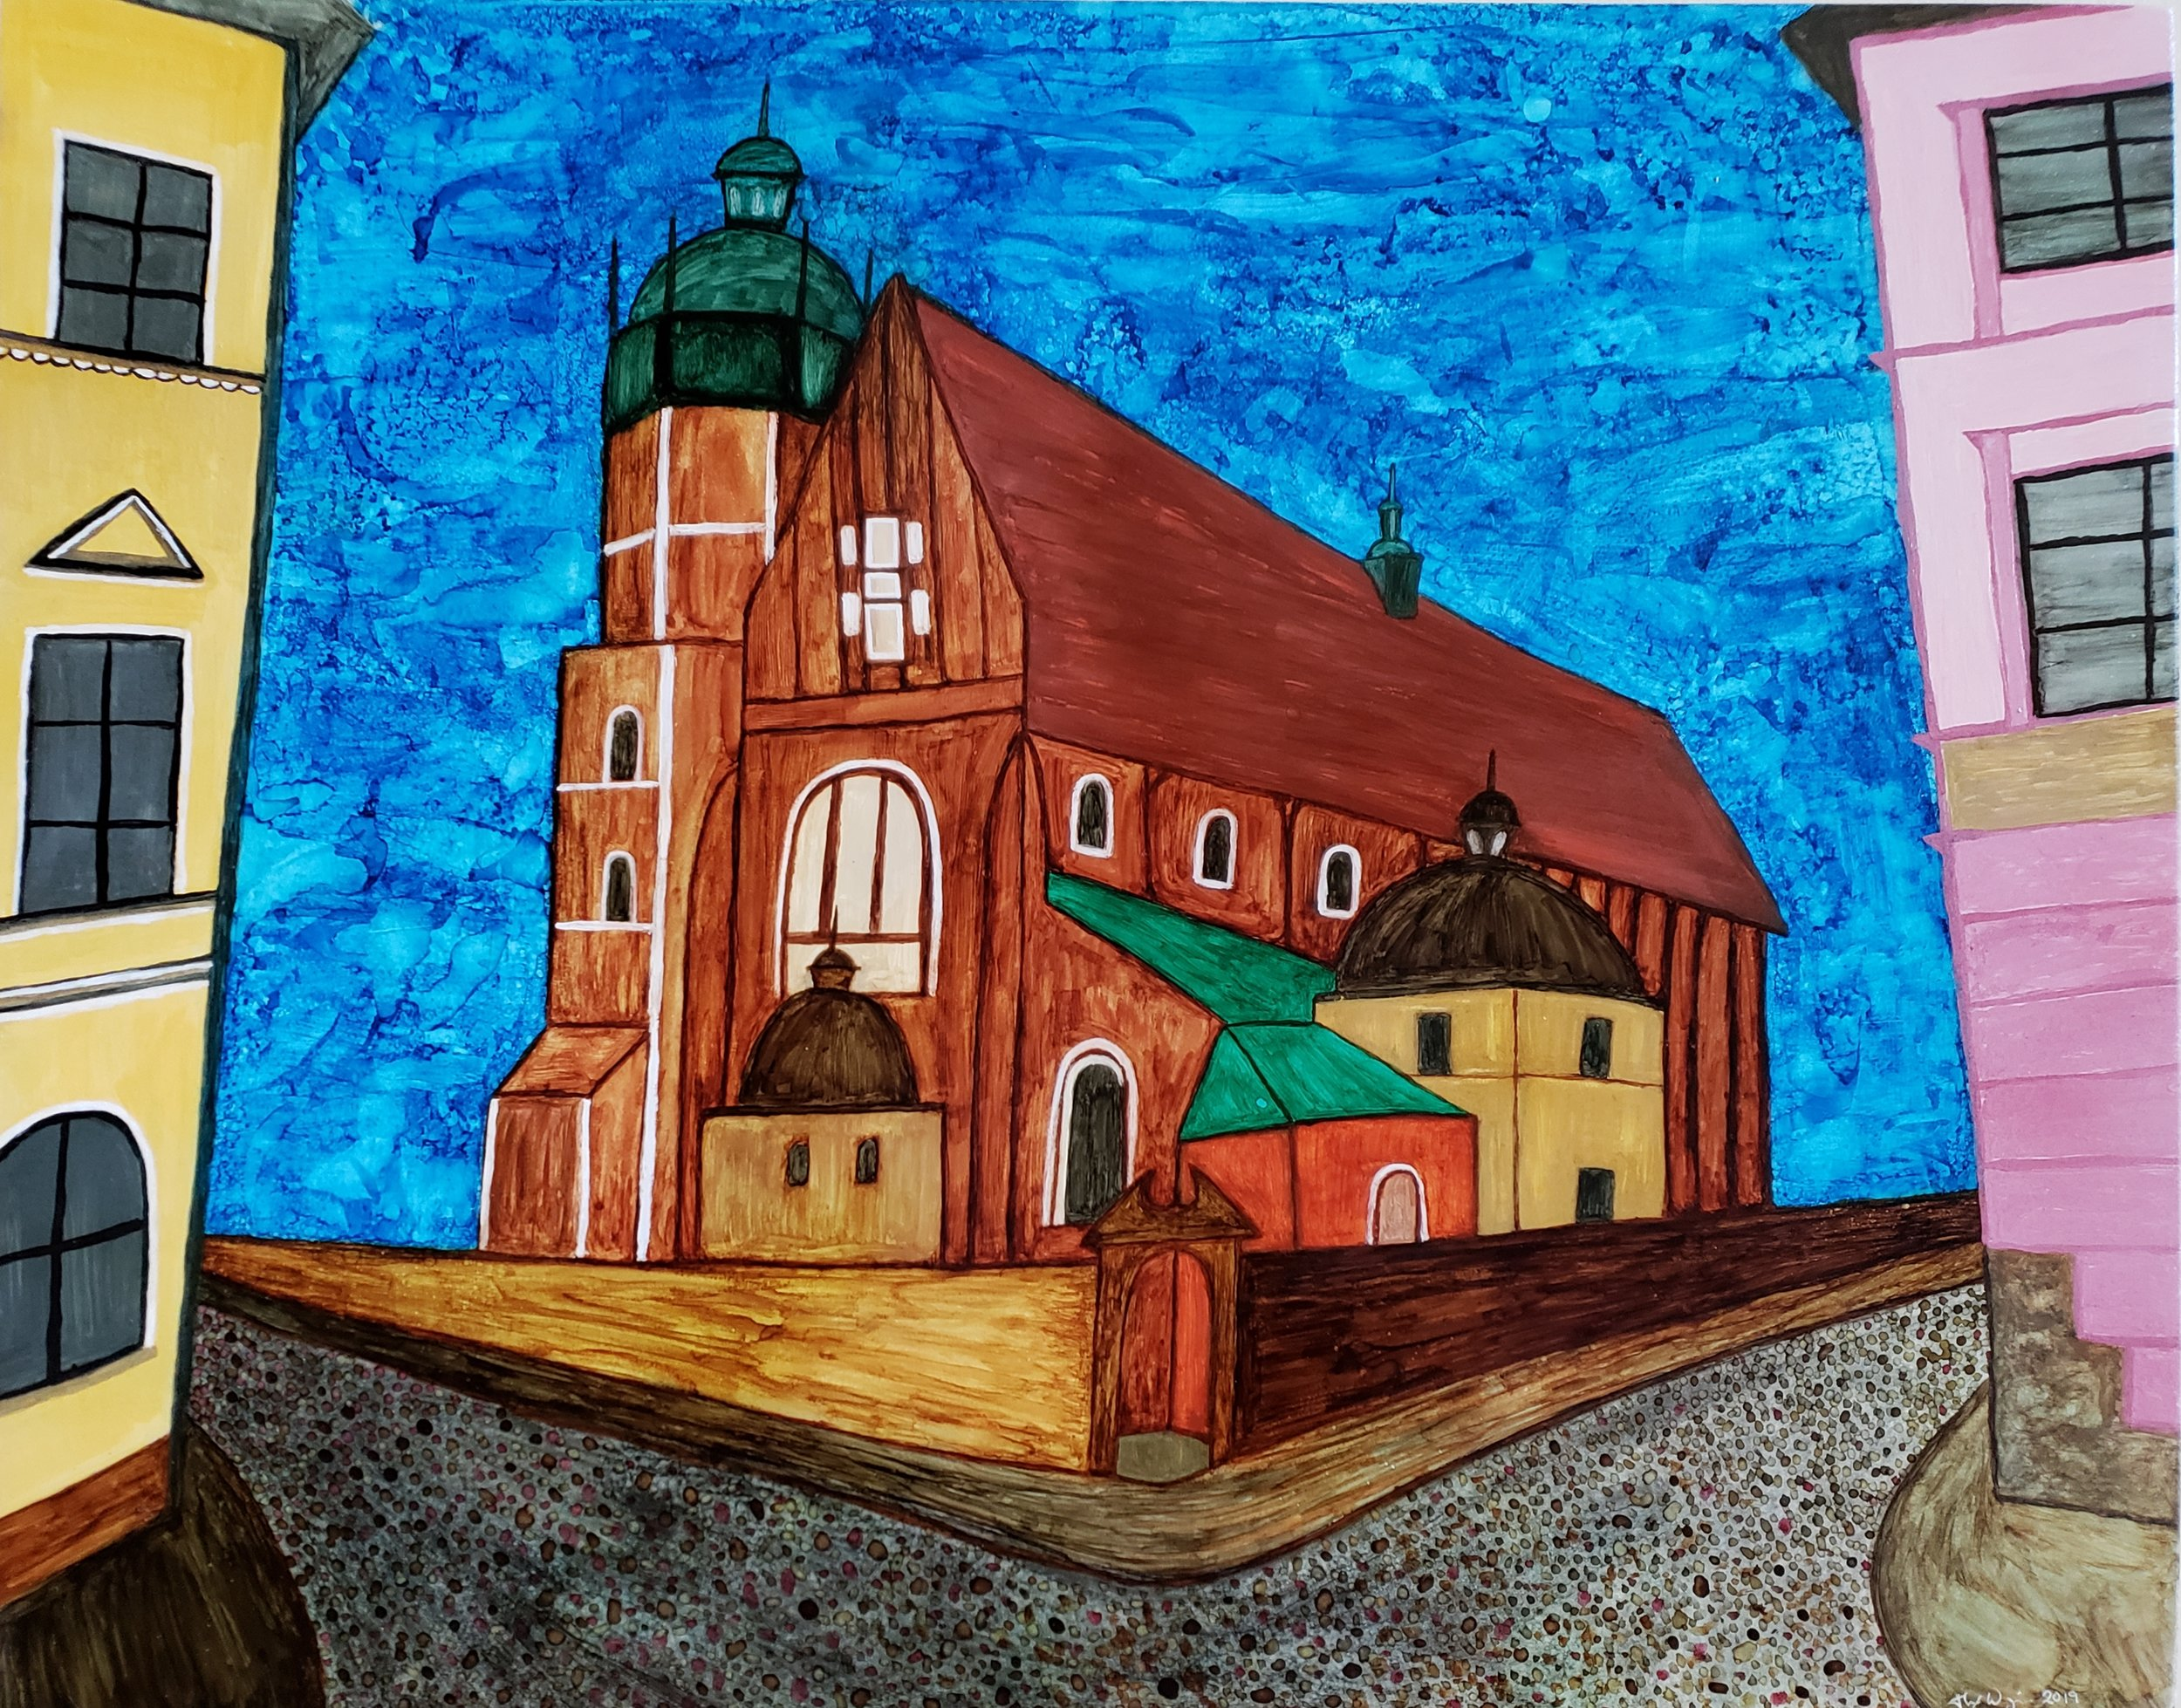 Bazylika Bożego Ciała  (The Corpus Christi Basilica) 2019    16x20 Alcohol ink on Ecstatic Wax Board    $450